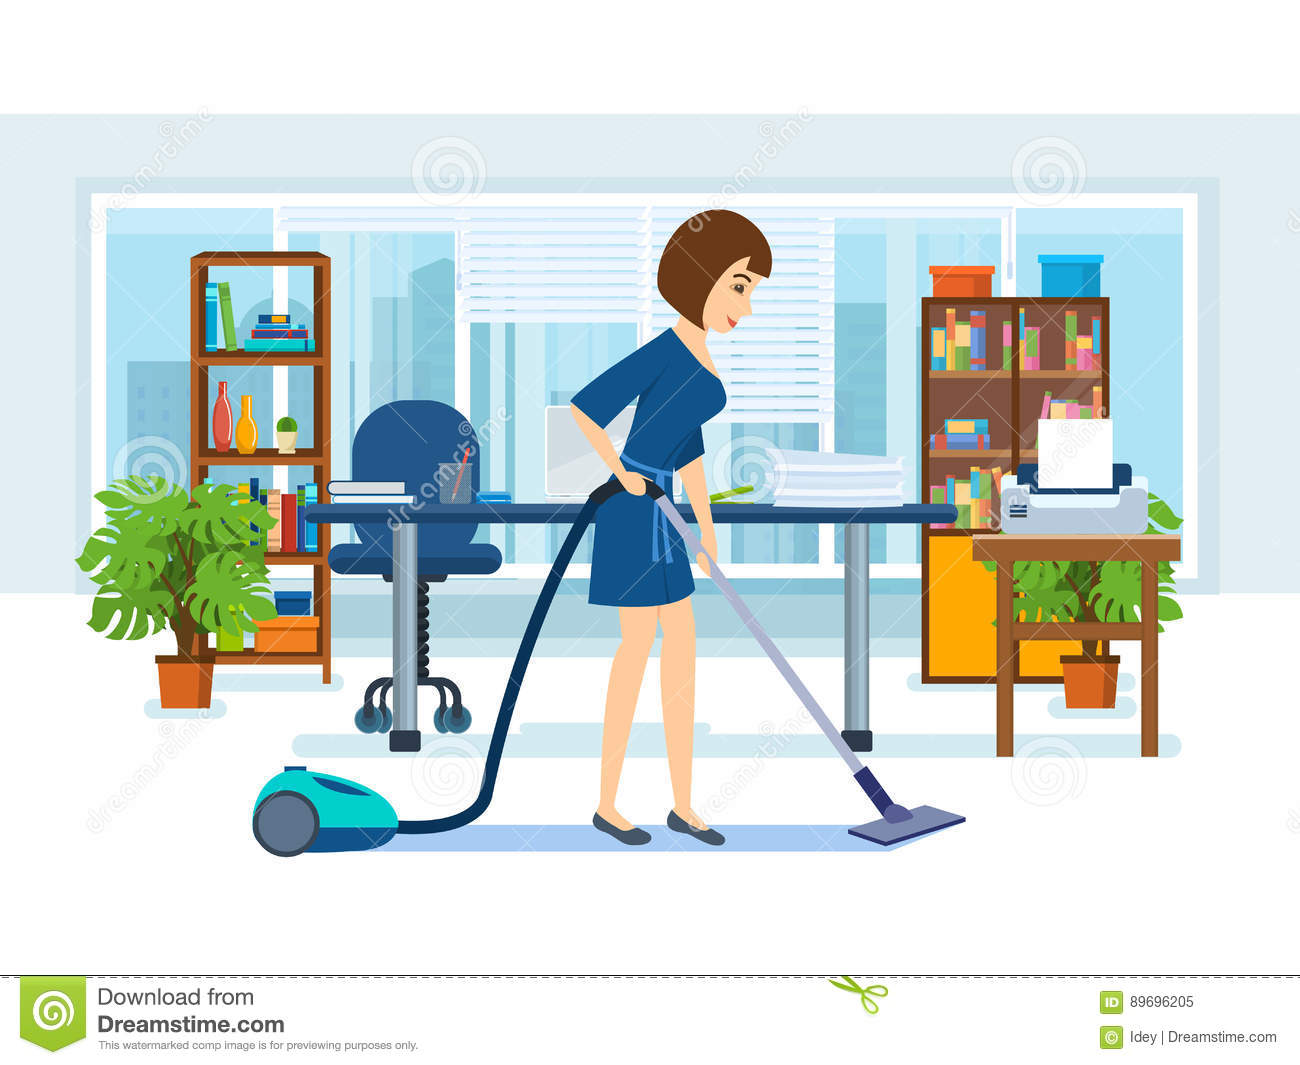 how to motivate employees to clean